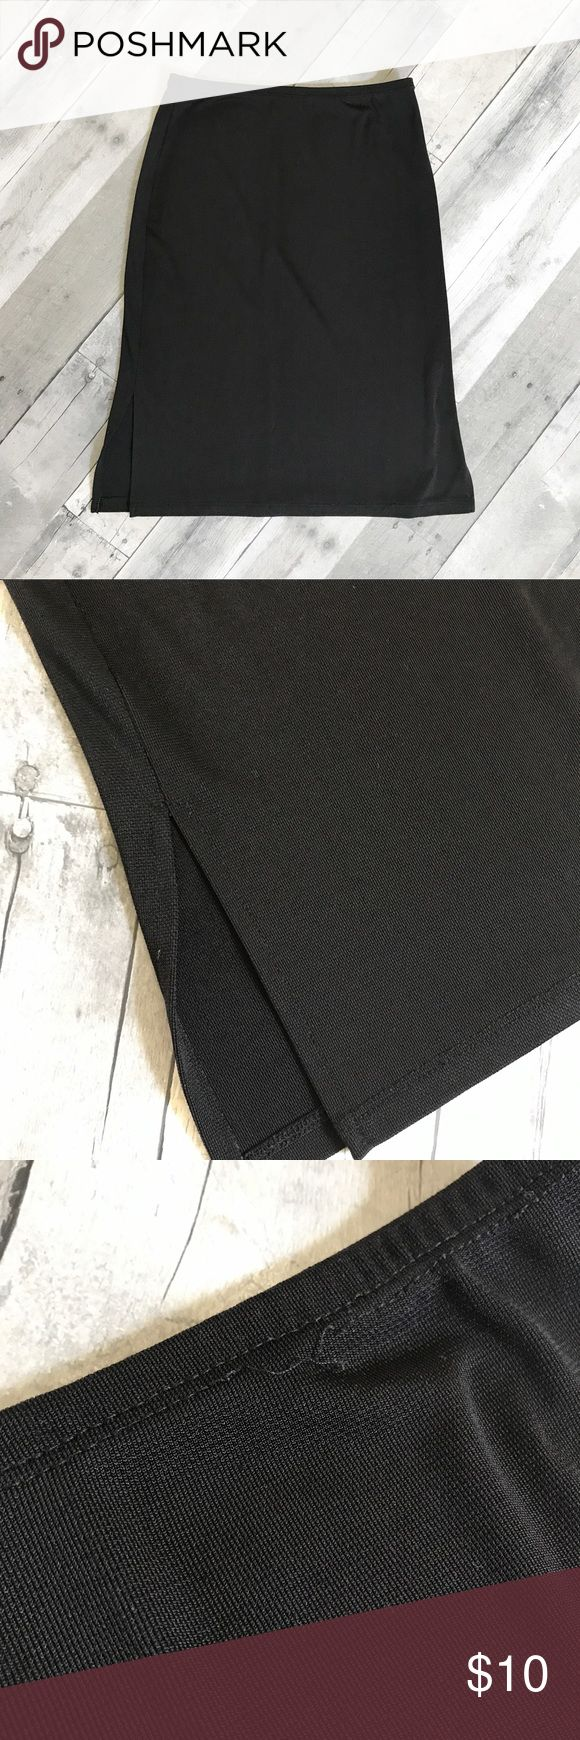 Slip Skirt Super cute slip skirt in great condition! Thin and slightly sheer, but a cool texture to it. No tags inside, but fits like a Small. Black pencil style with side slits. Skirts Pencil